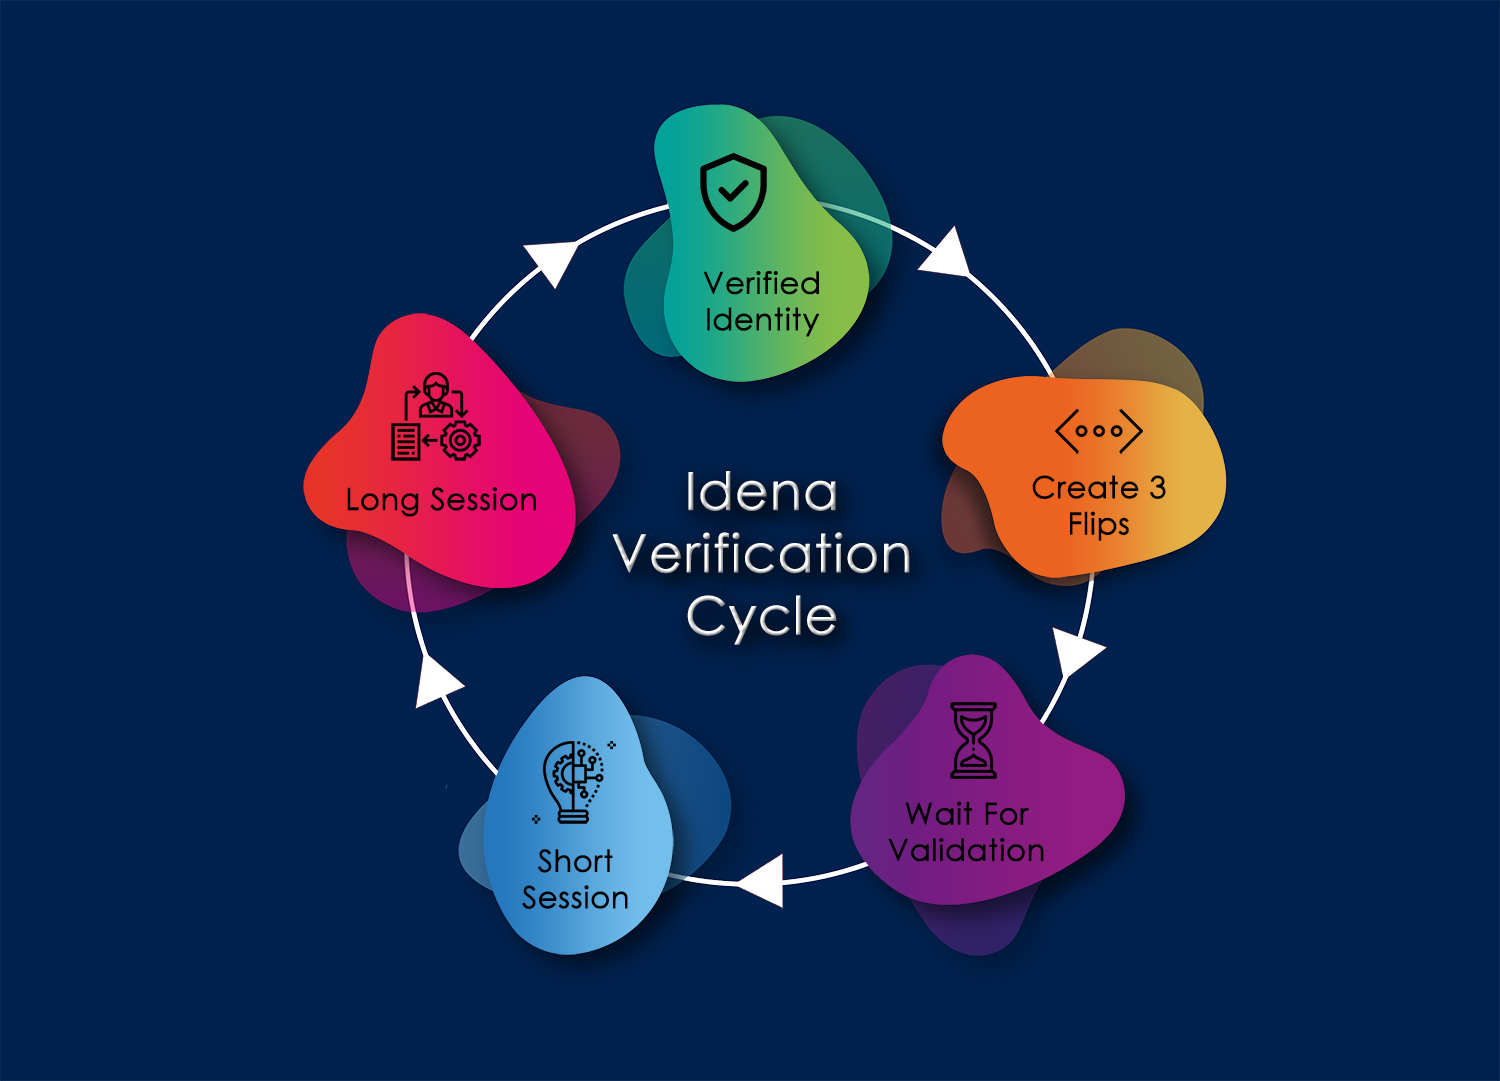 Idena verification cycle infographic